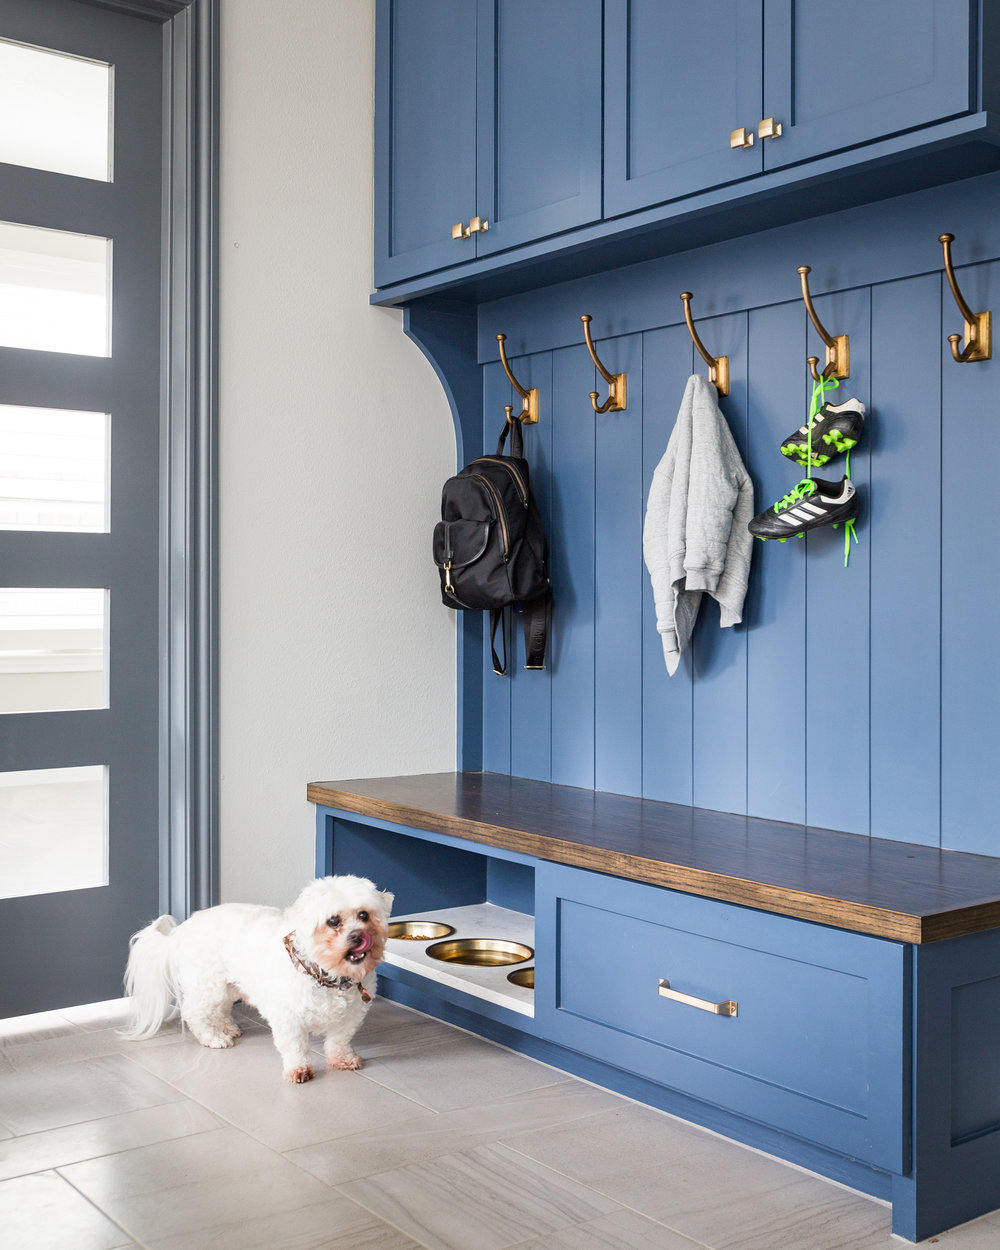 Mudroom bench dog feeding station designed by Carla Aston.jpg